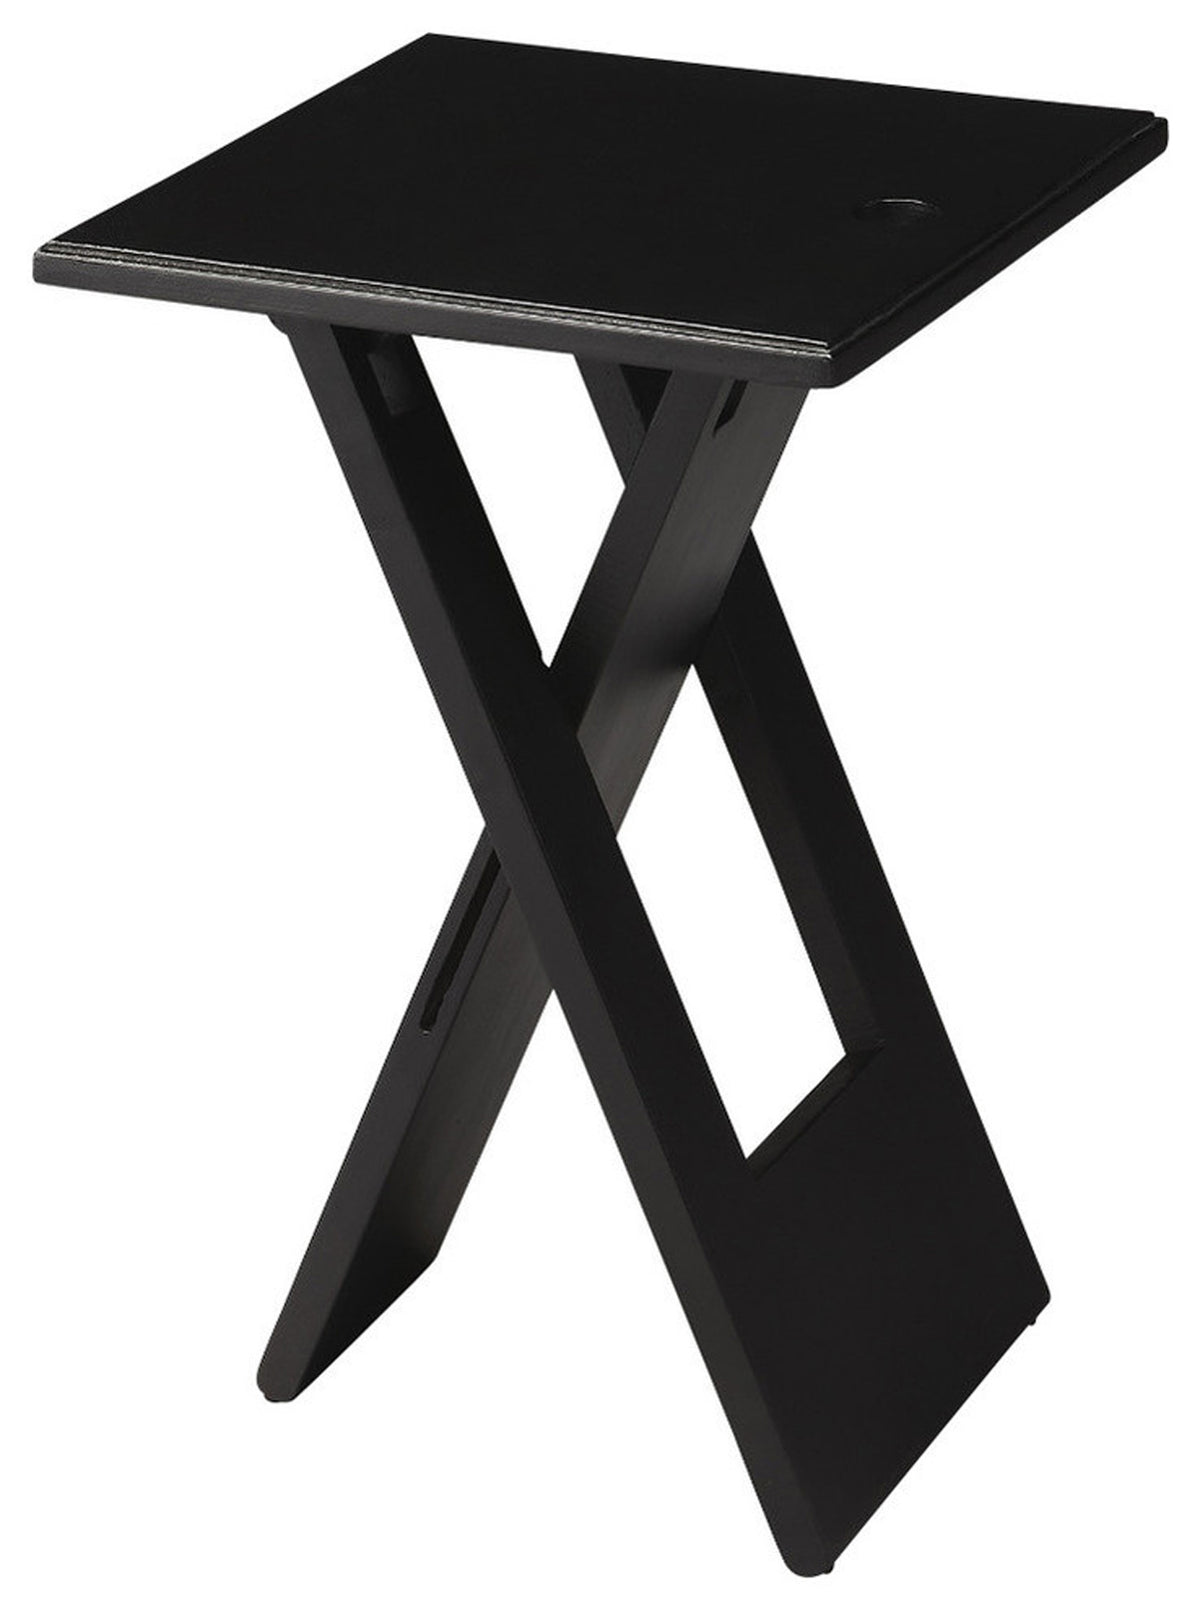 HAMMOND - BLACK - FOLDING TABLE